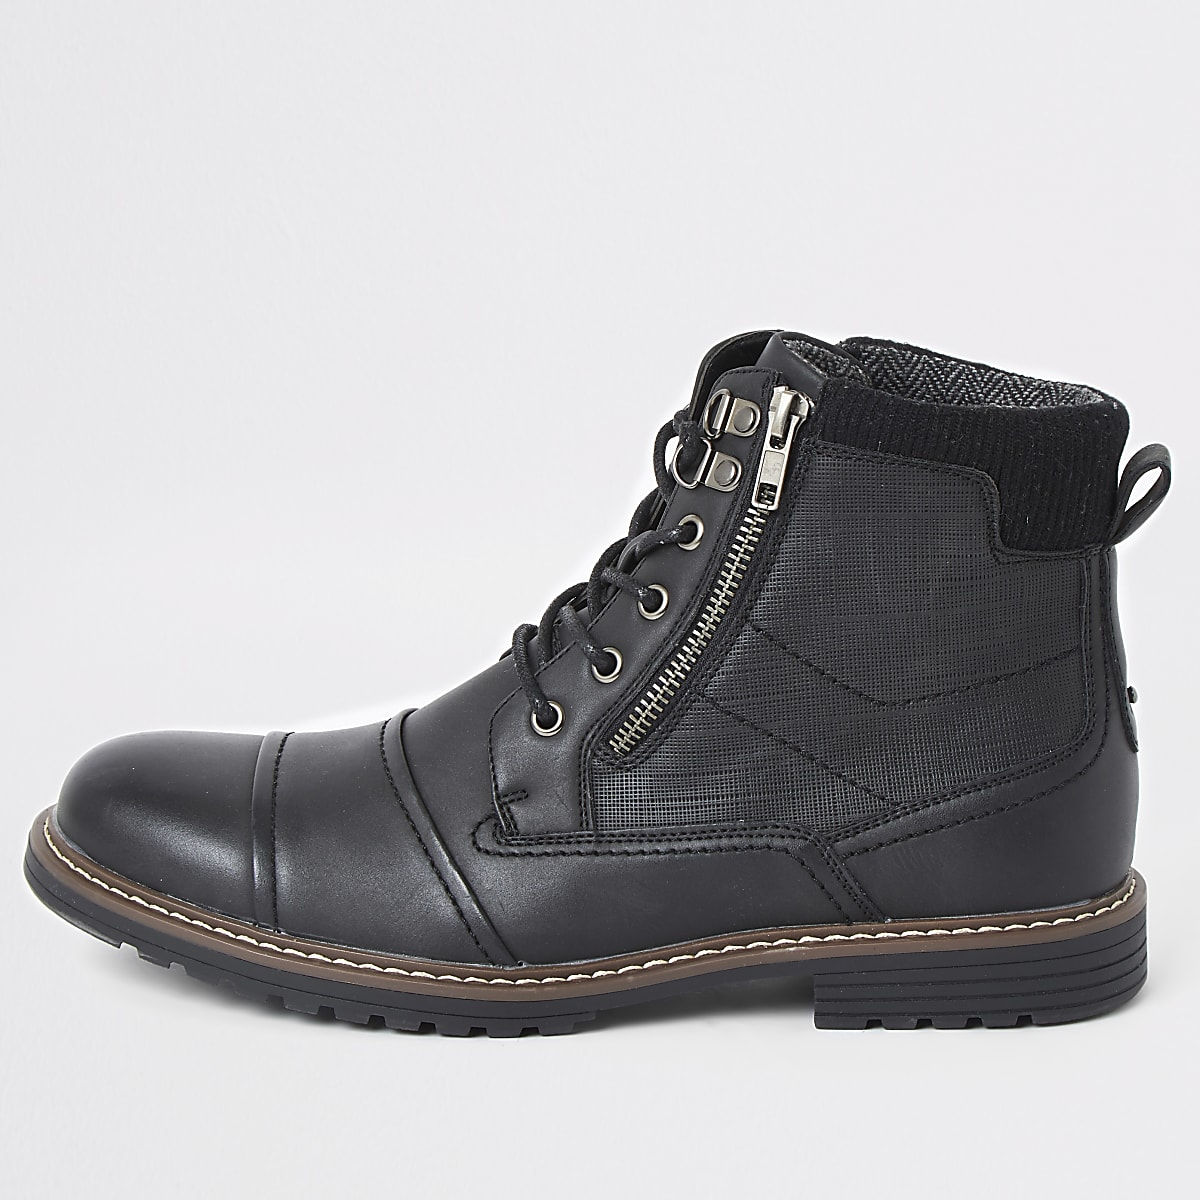 Black double zip lace-up military boots